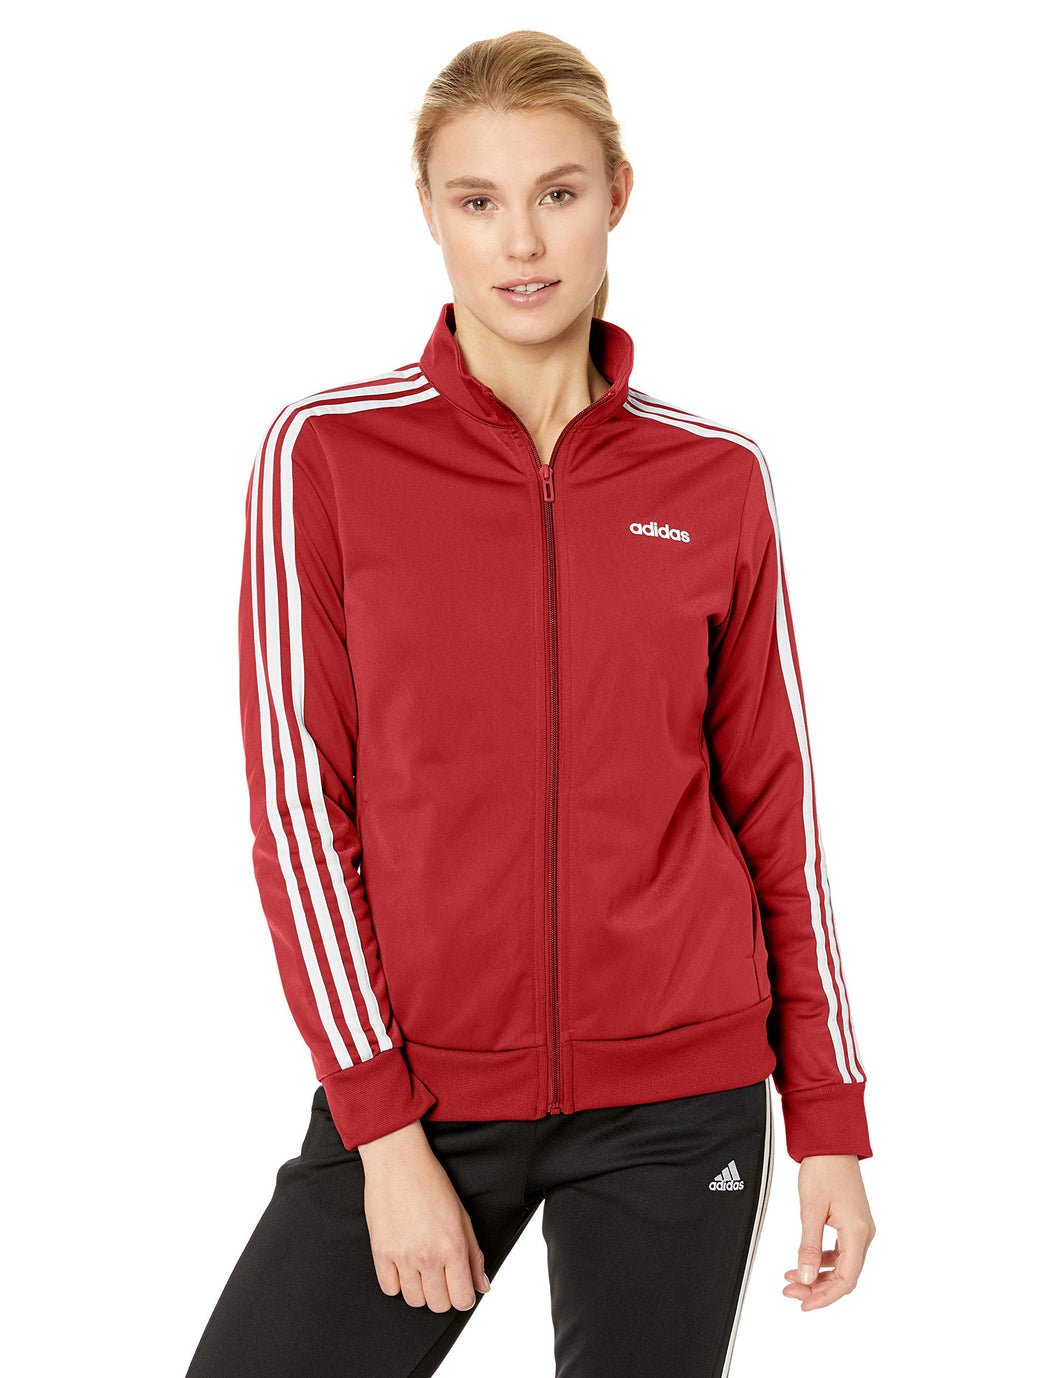 adidas Essentials 100% Recycled Tricot Track Jacket